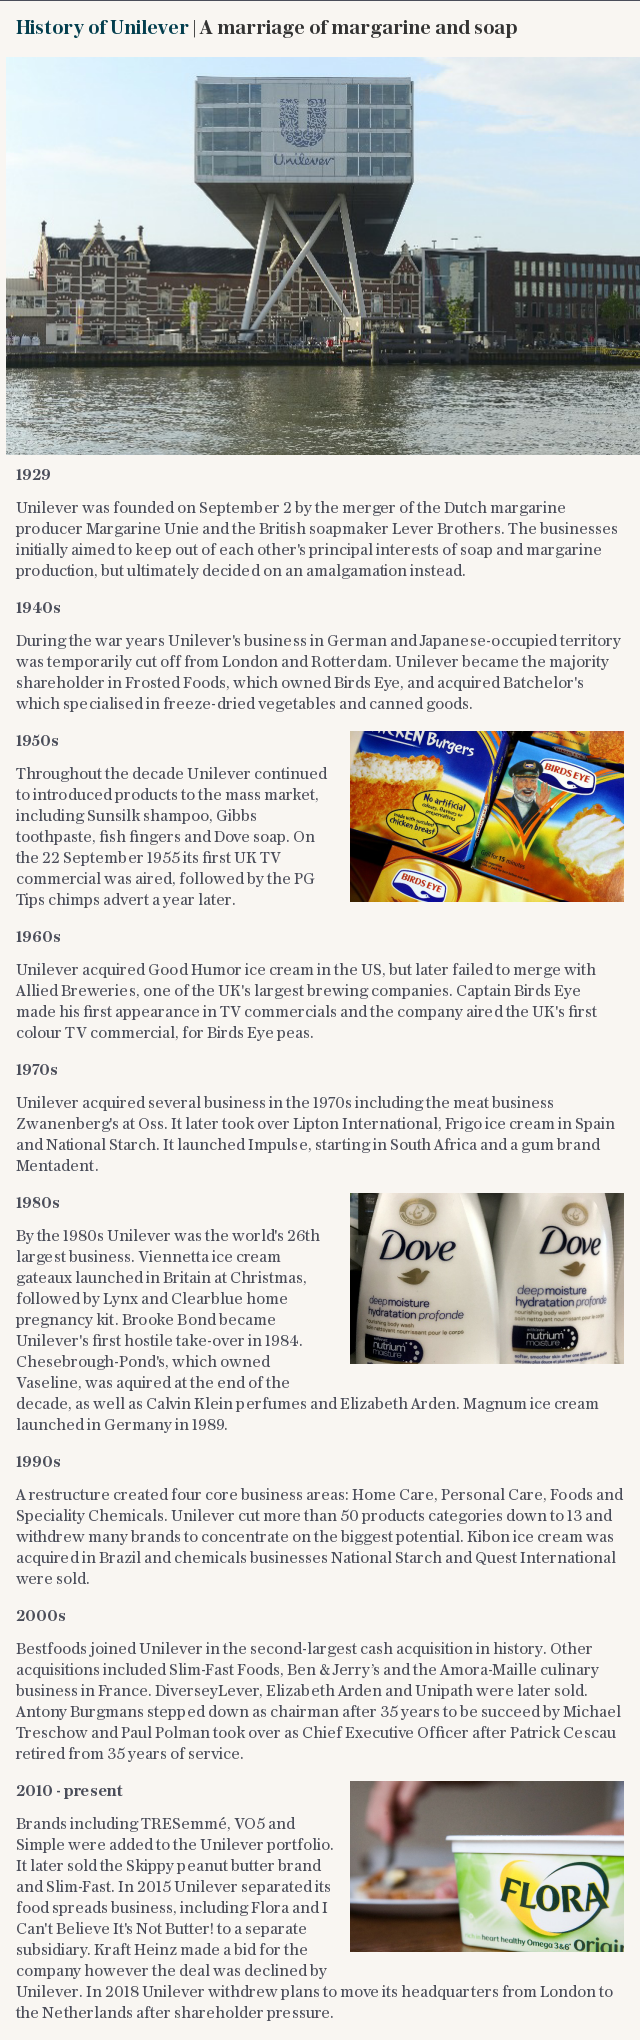 History of Unilever | A marriage of margarine and soap